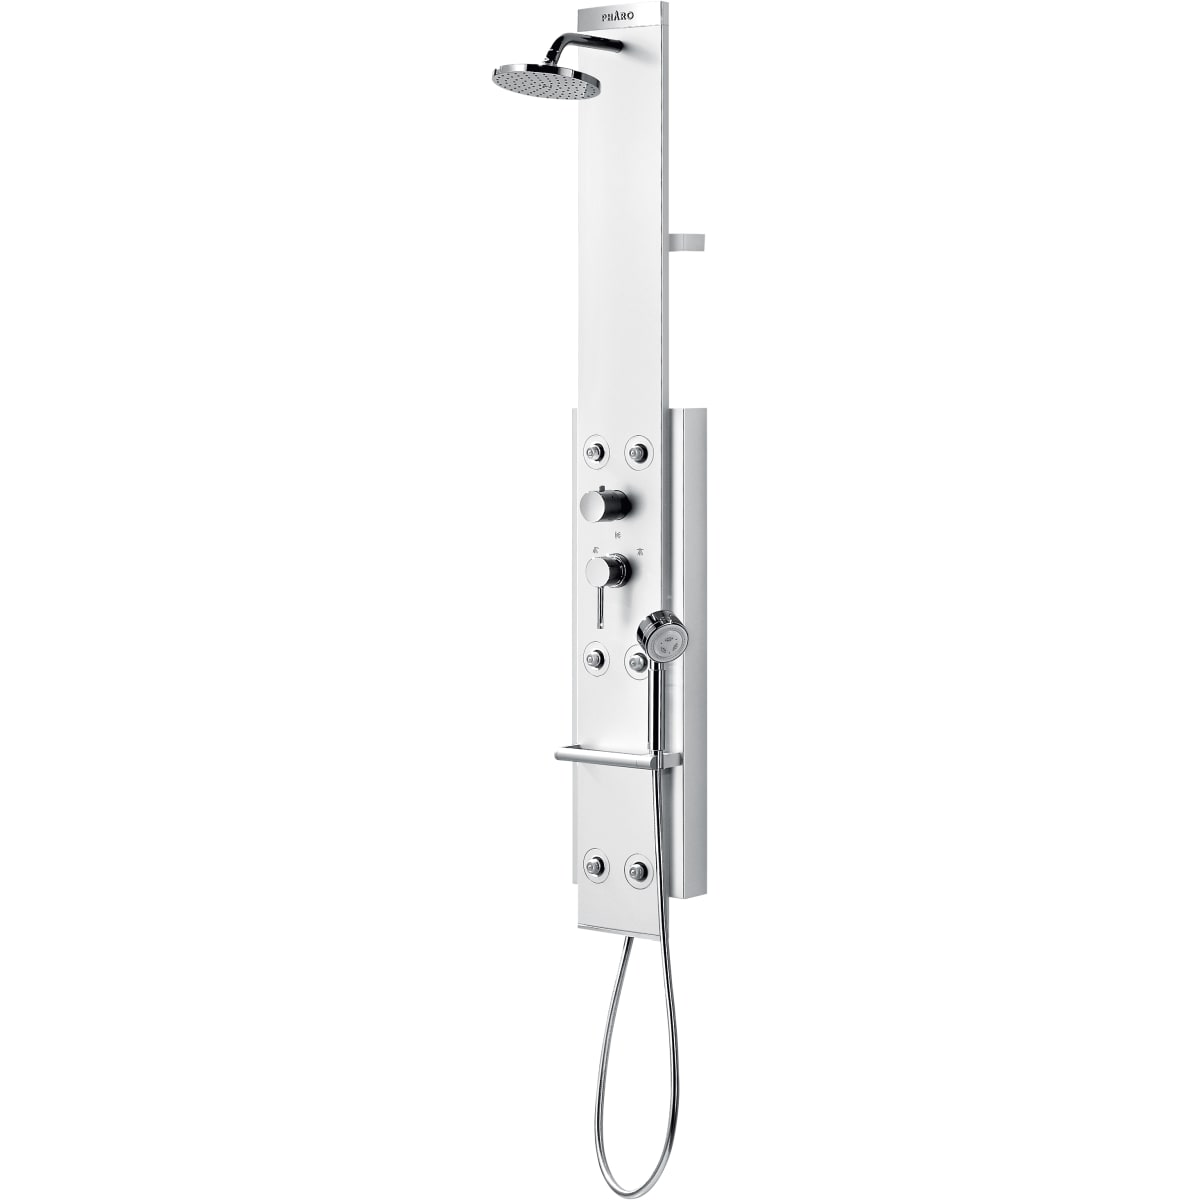 Hansgrohe 26871001 Chrome ShowerPower Shower Panel Satin Chrome with ...